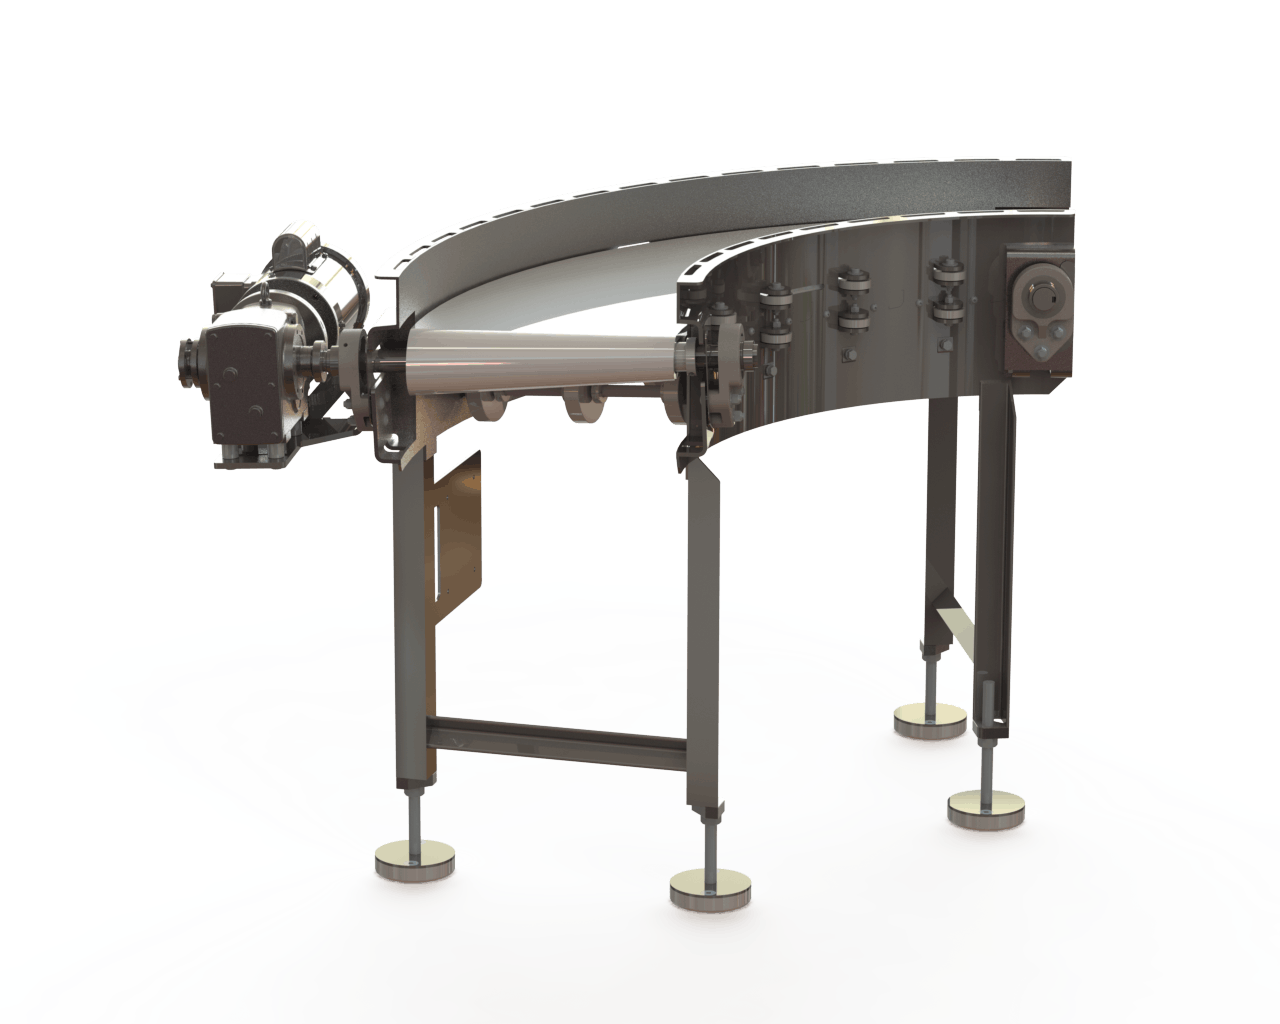 Zero Tangent Radius Conveyor Conveyor sold by Fusion Tech Integrated Inc.